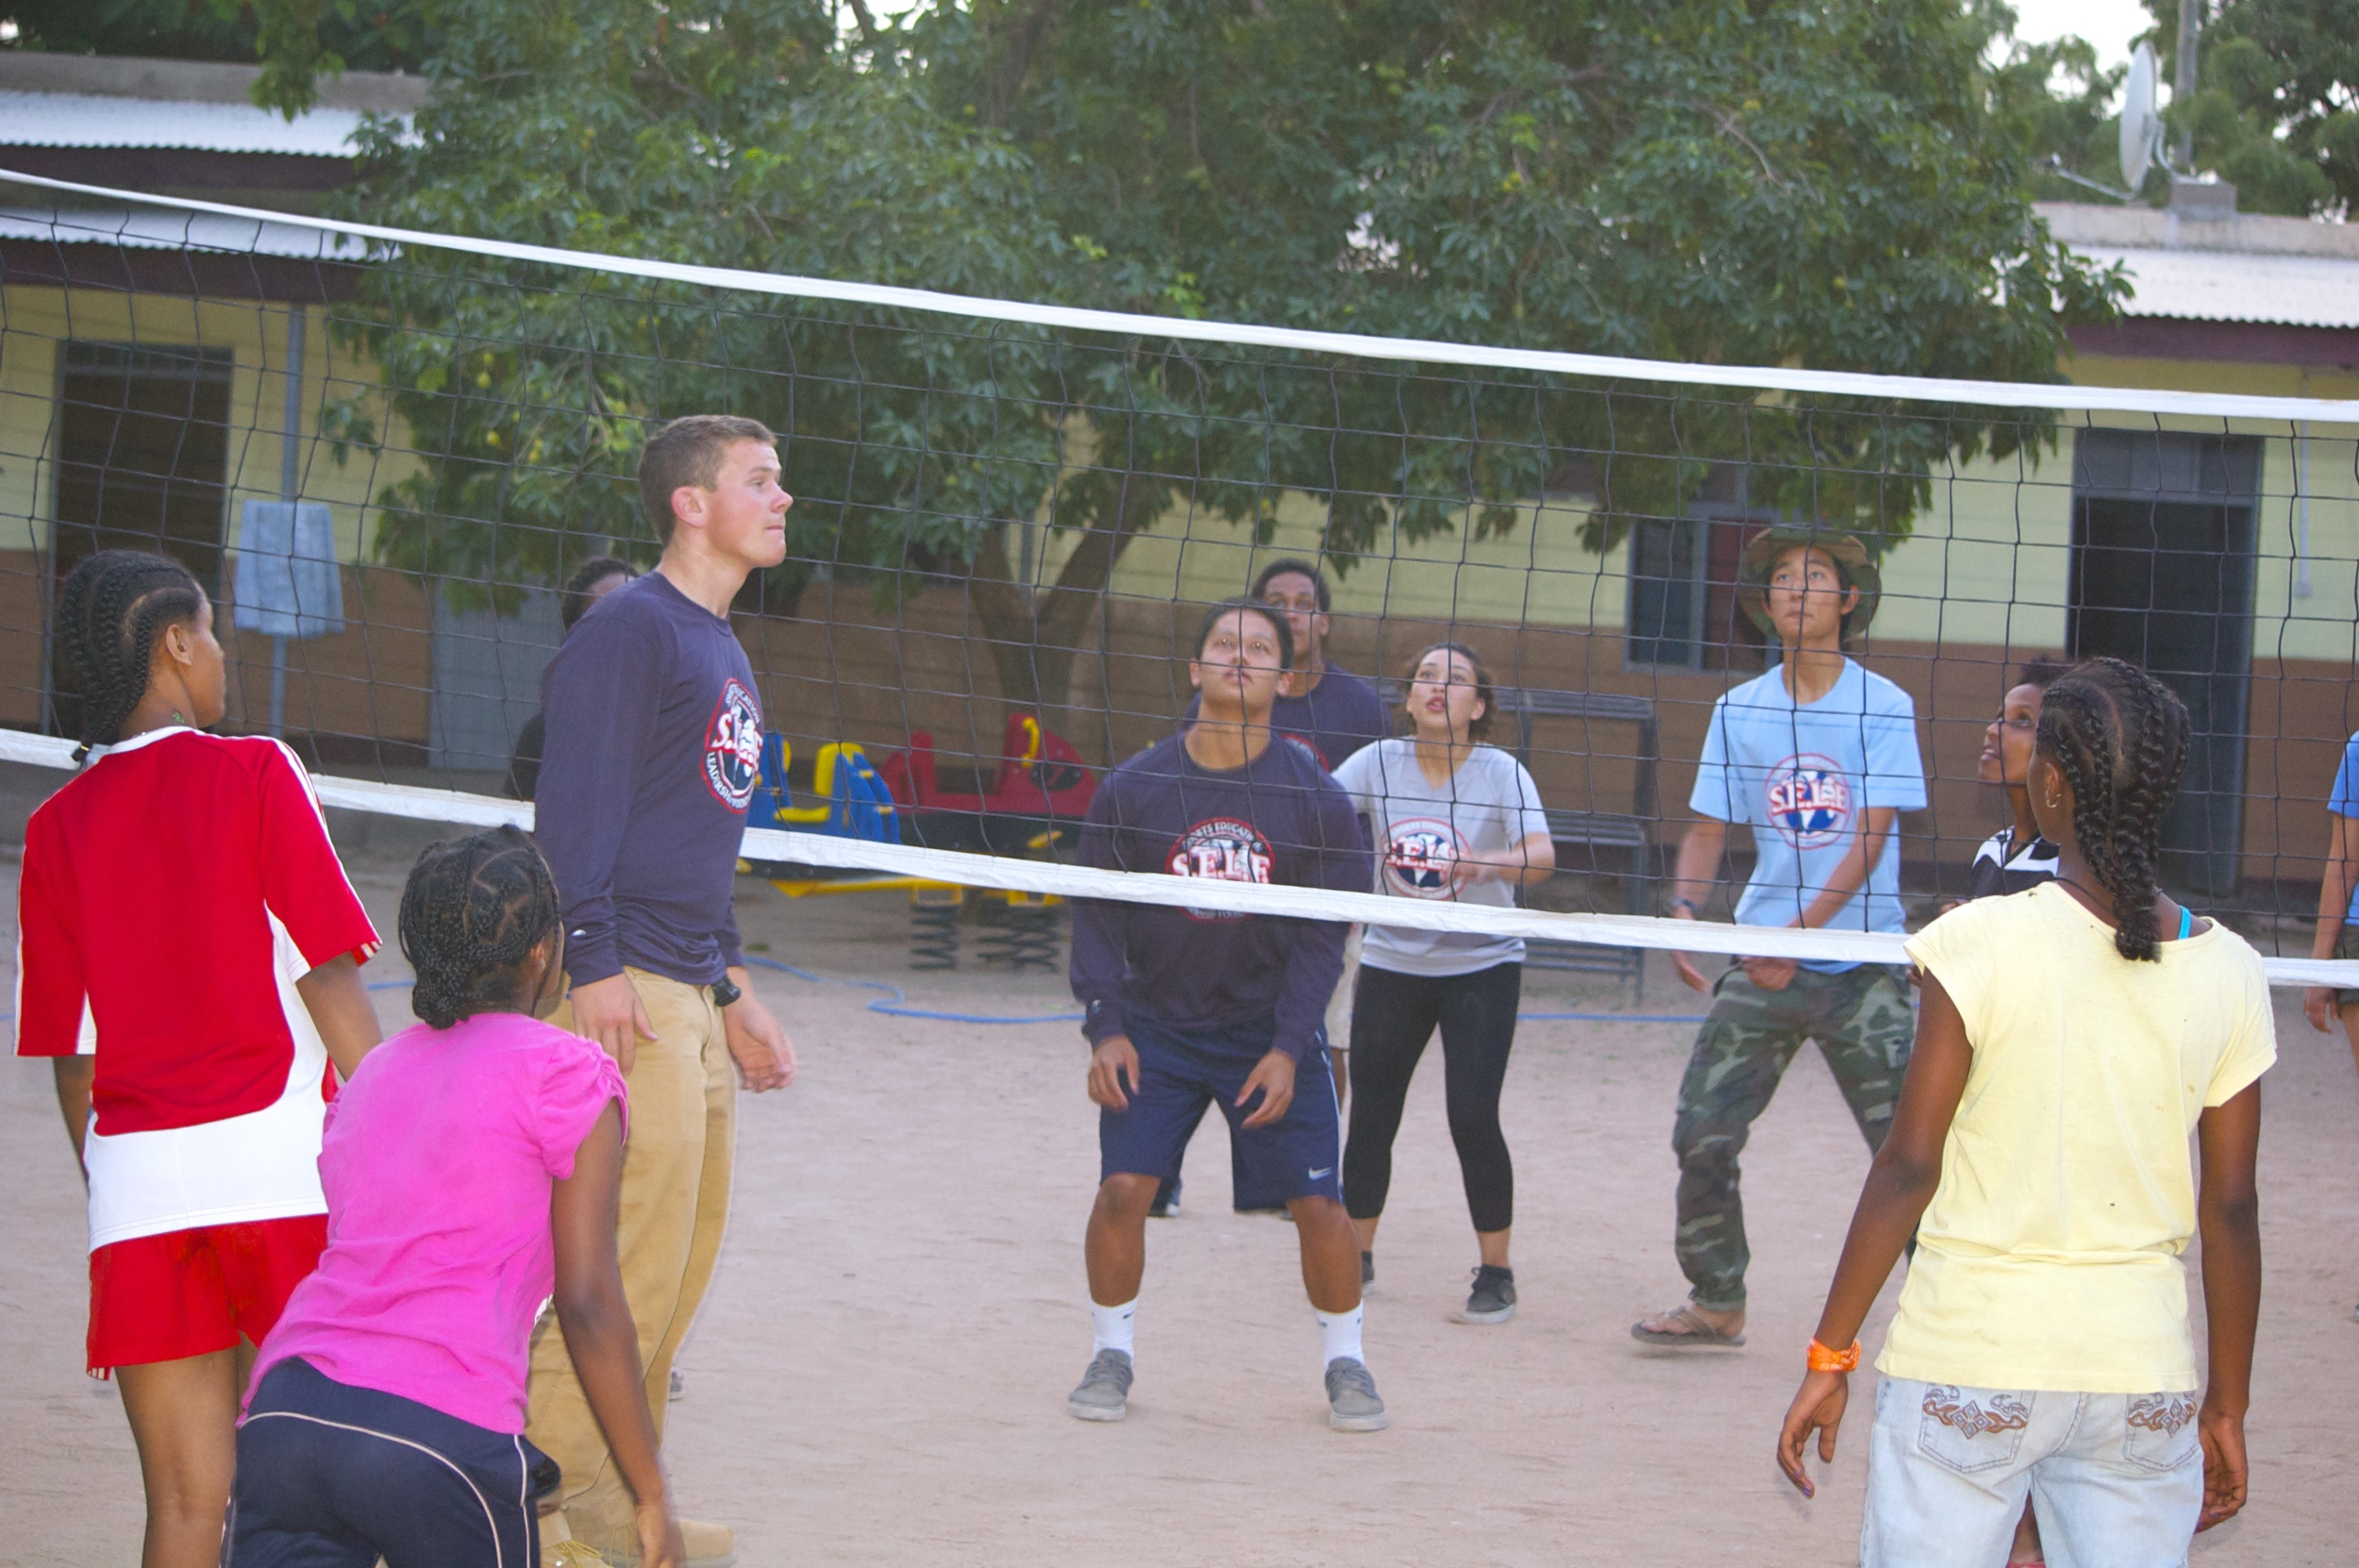 Volleyball at the girl's orphanage